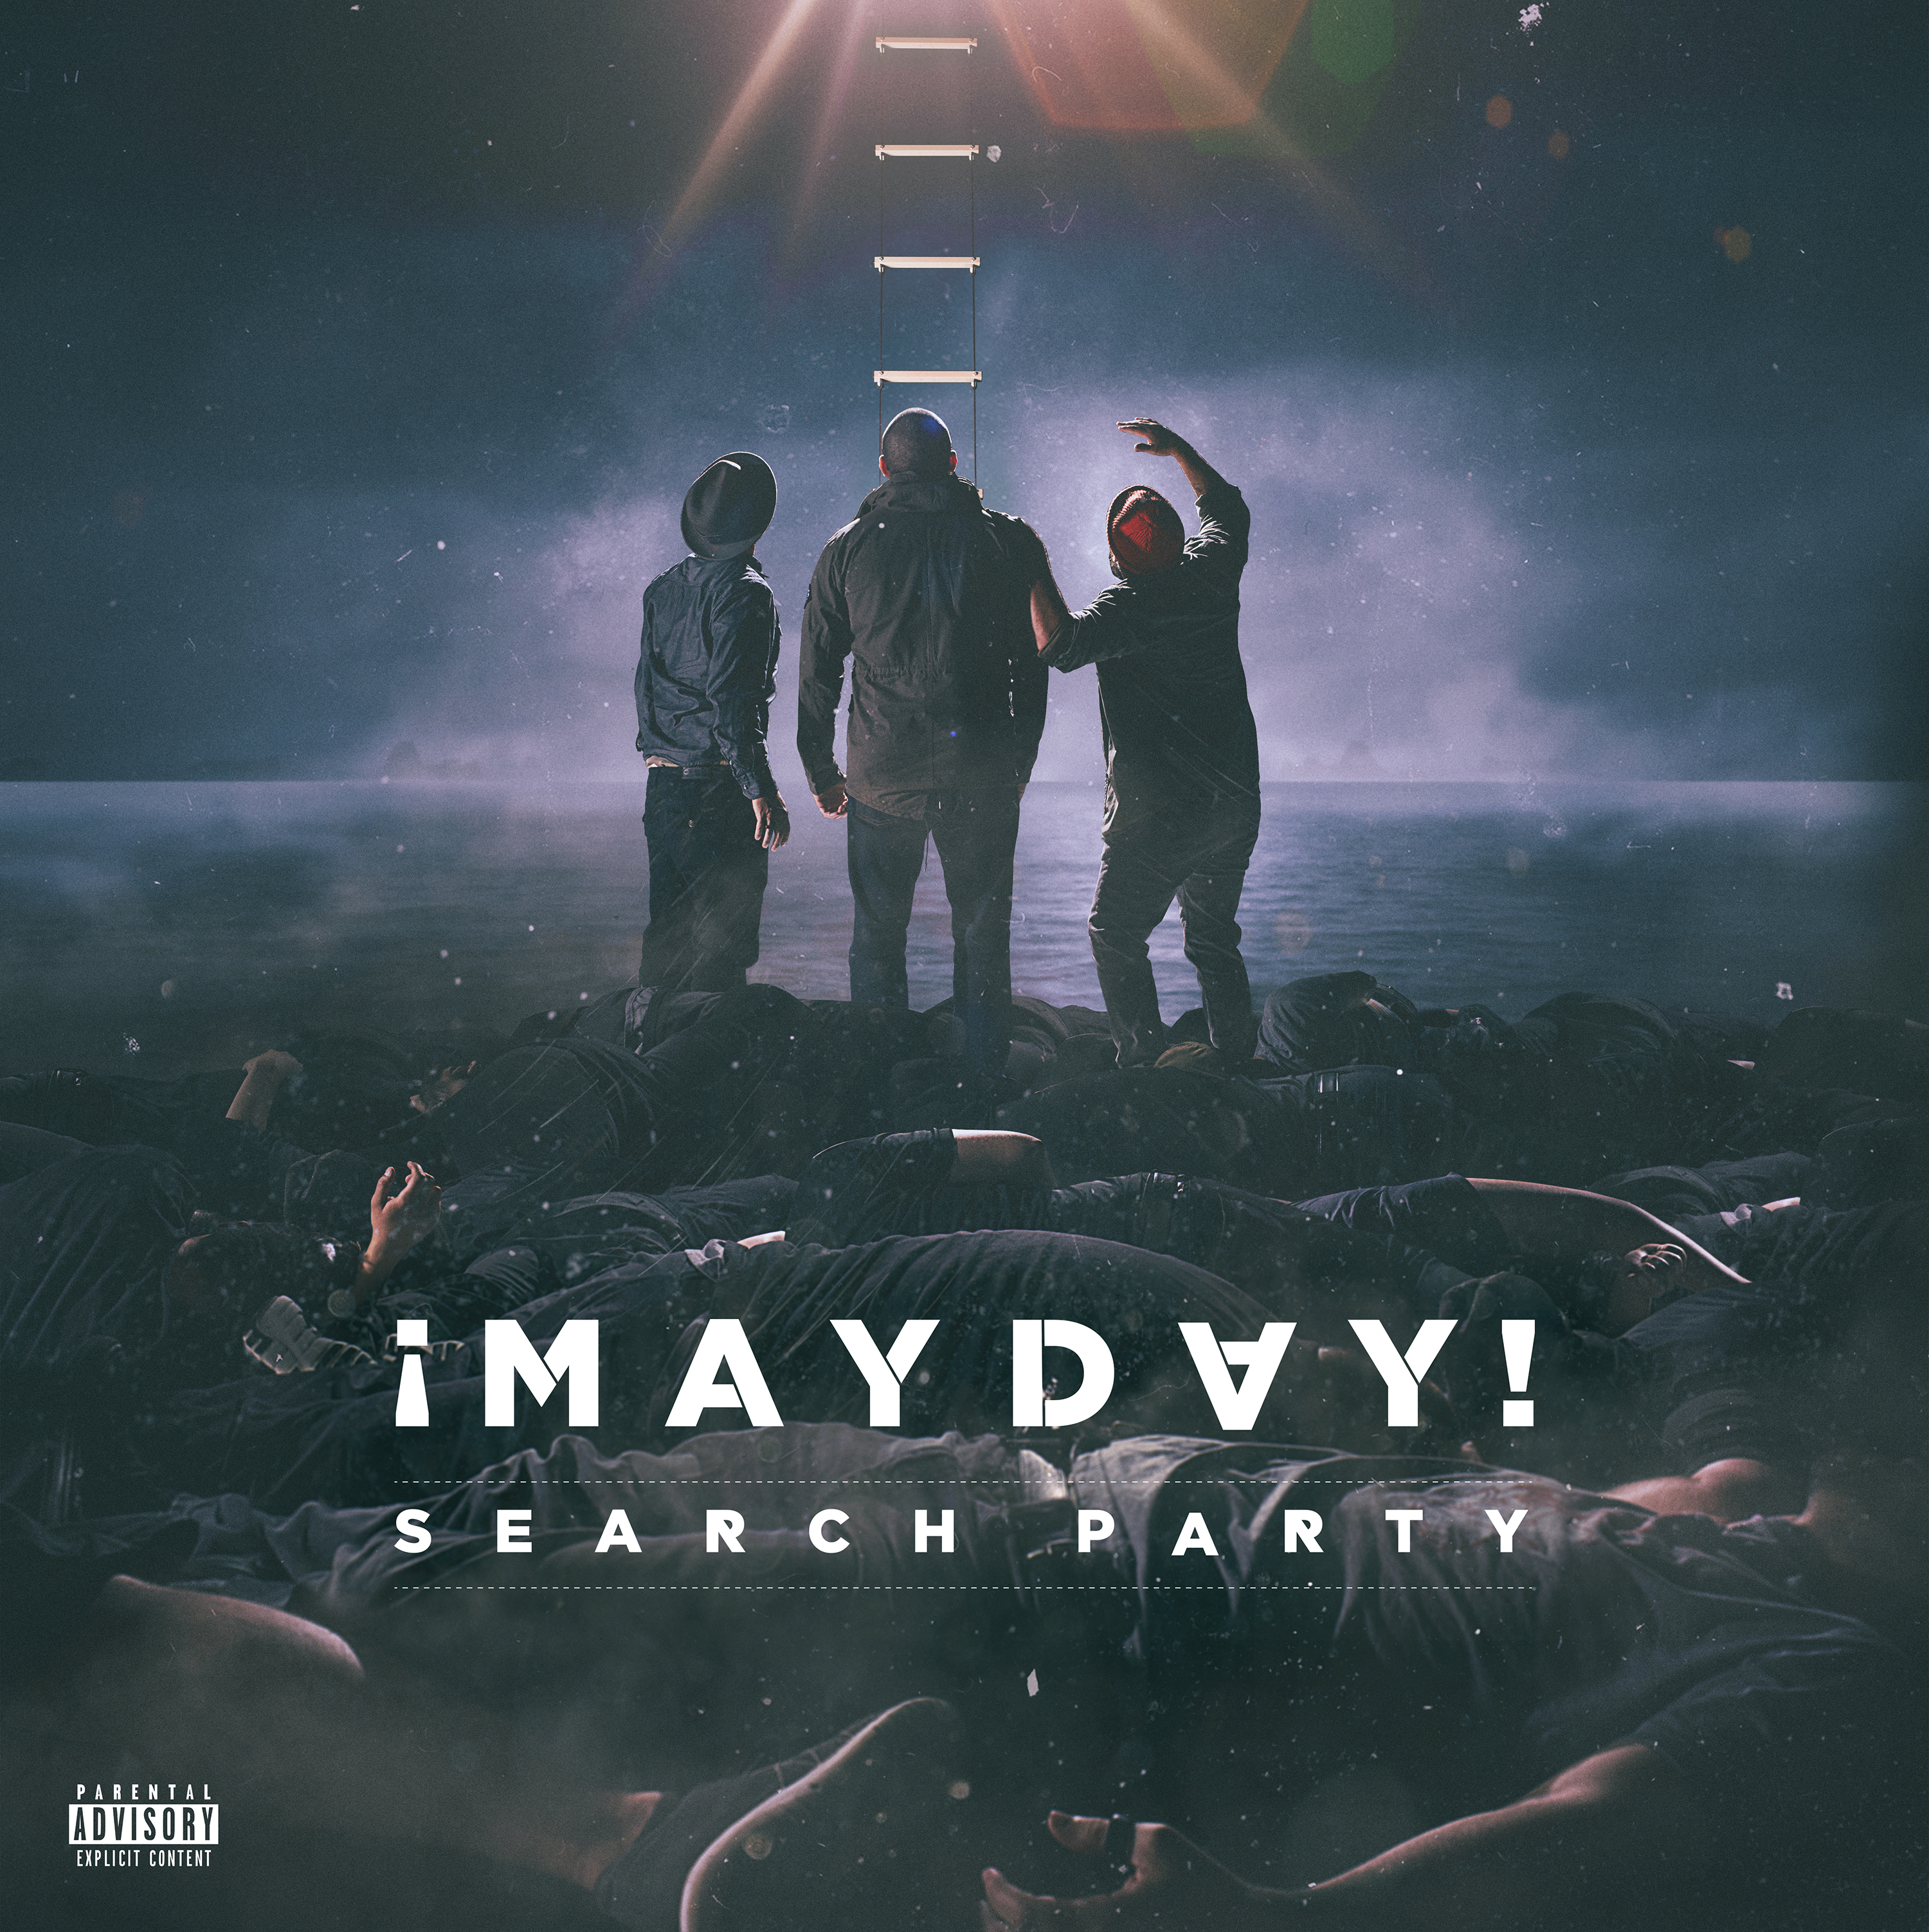 MAYDAY_SP_COVER_FINAL